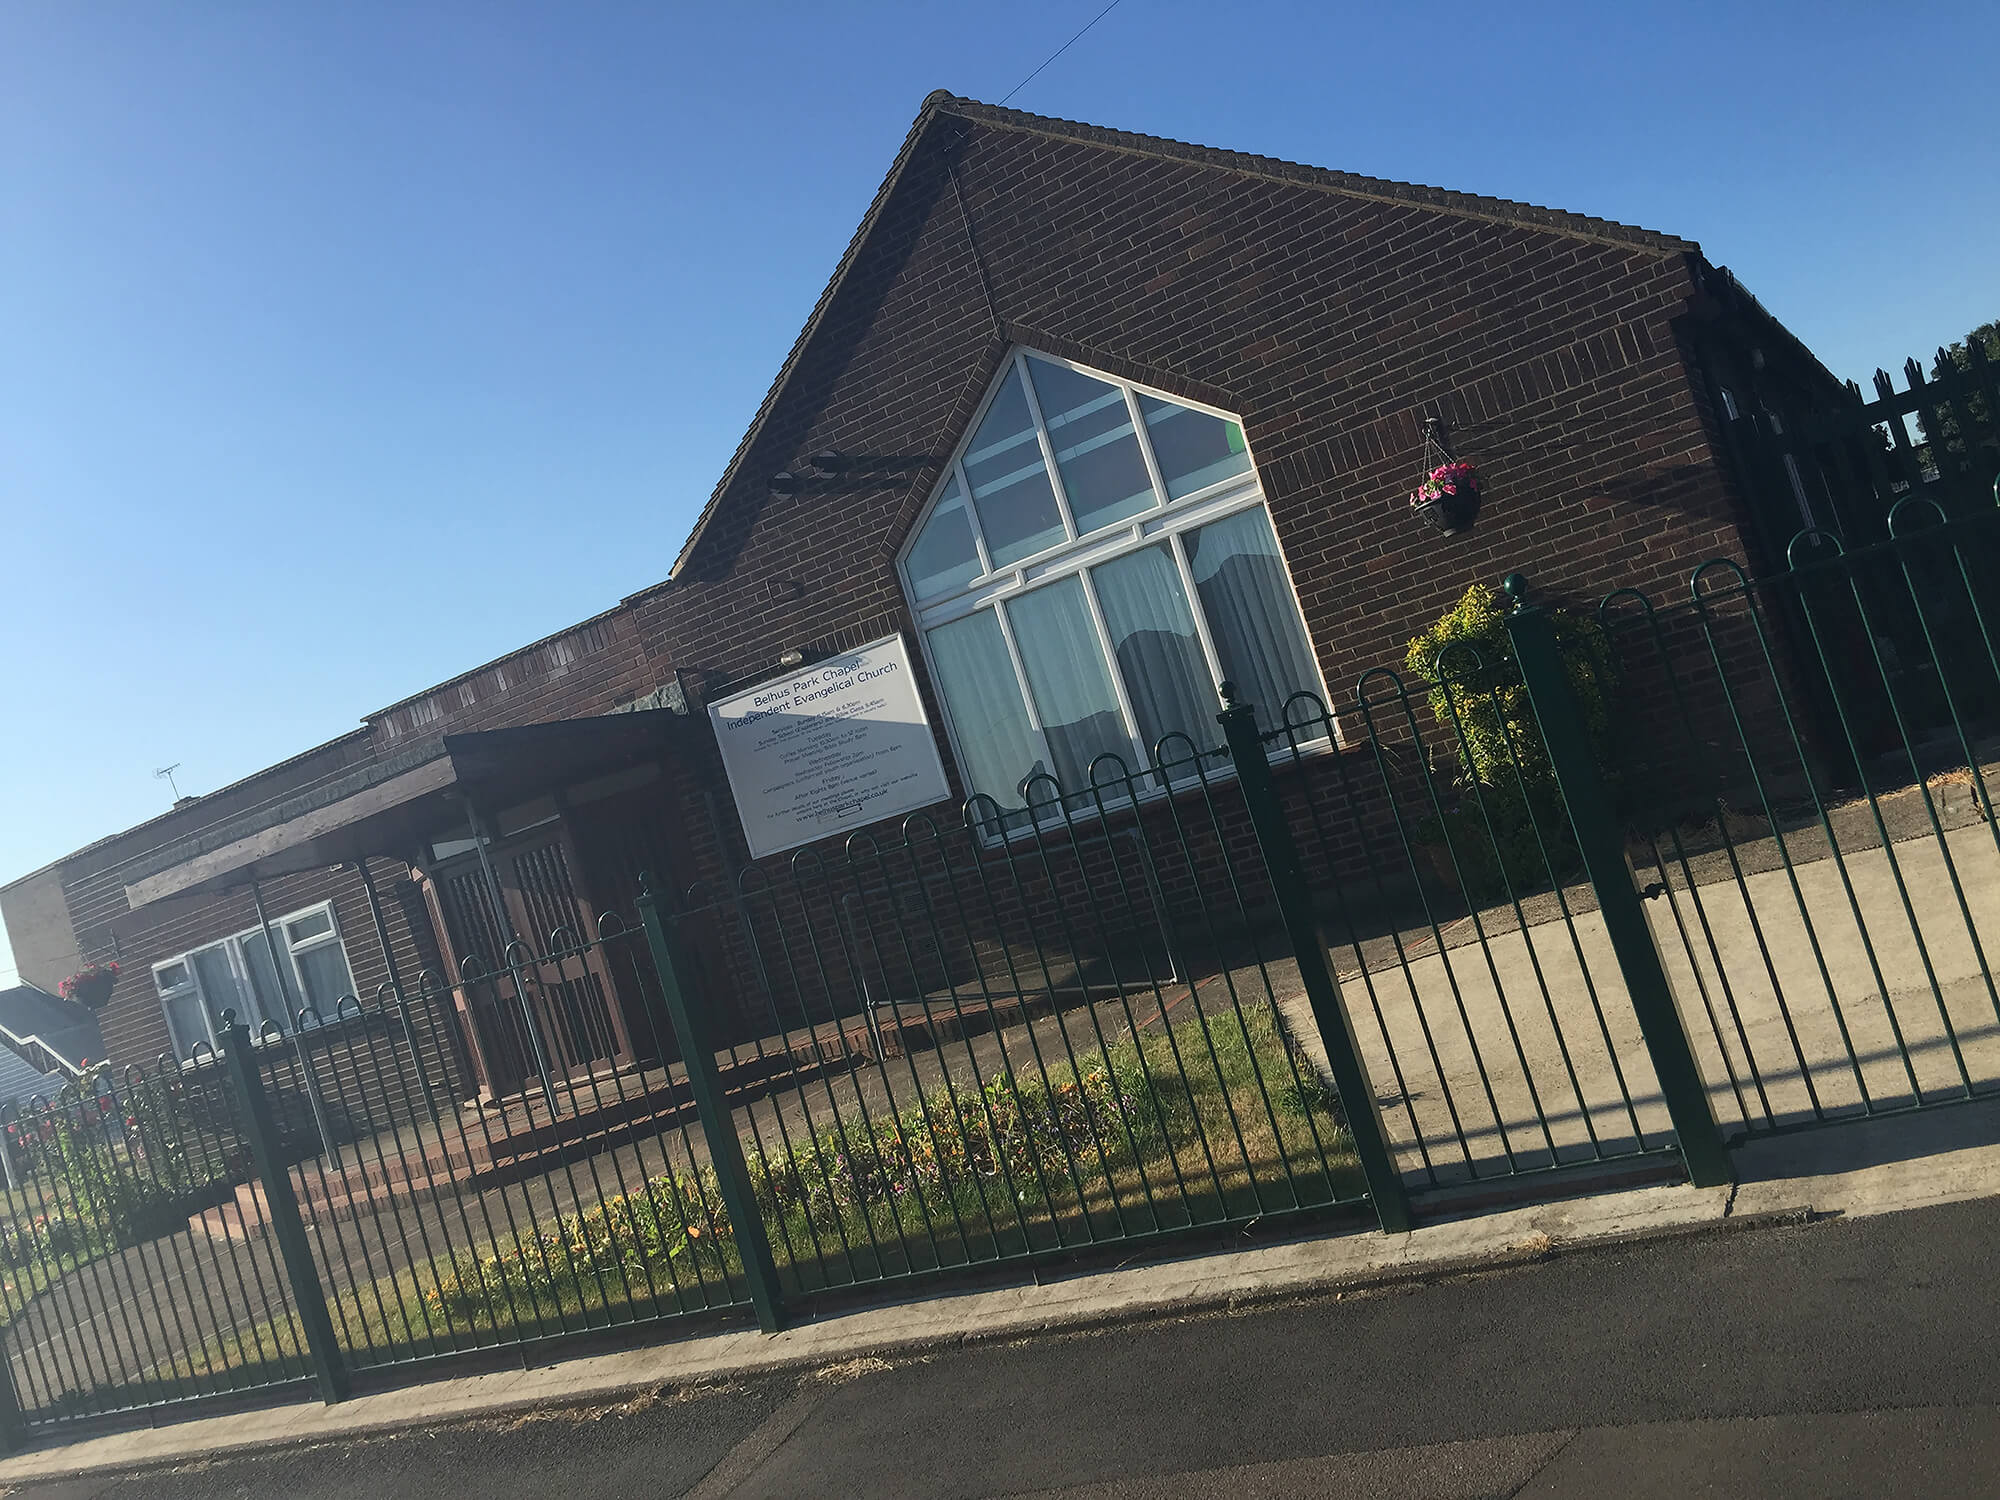 Introducing the Chapel – Belhus Park Chapel